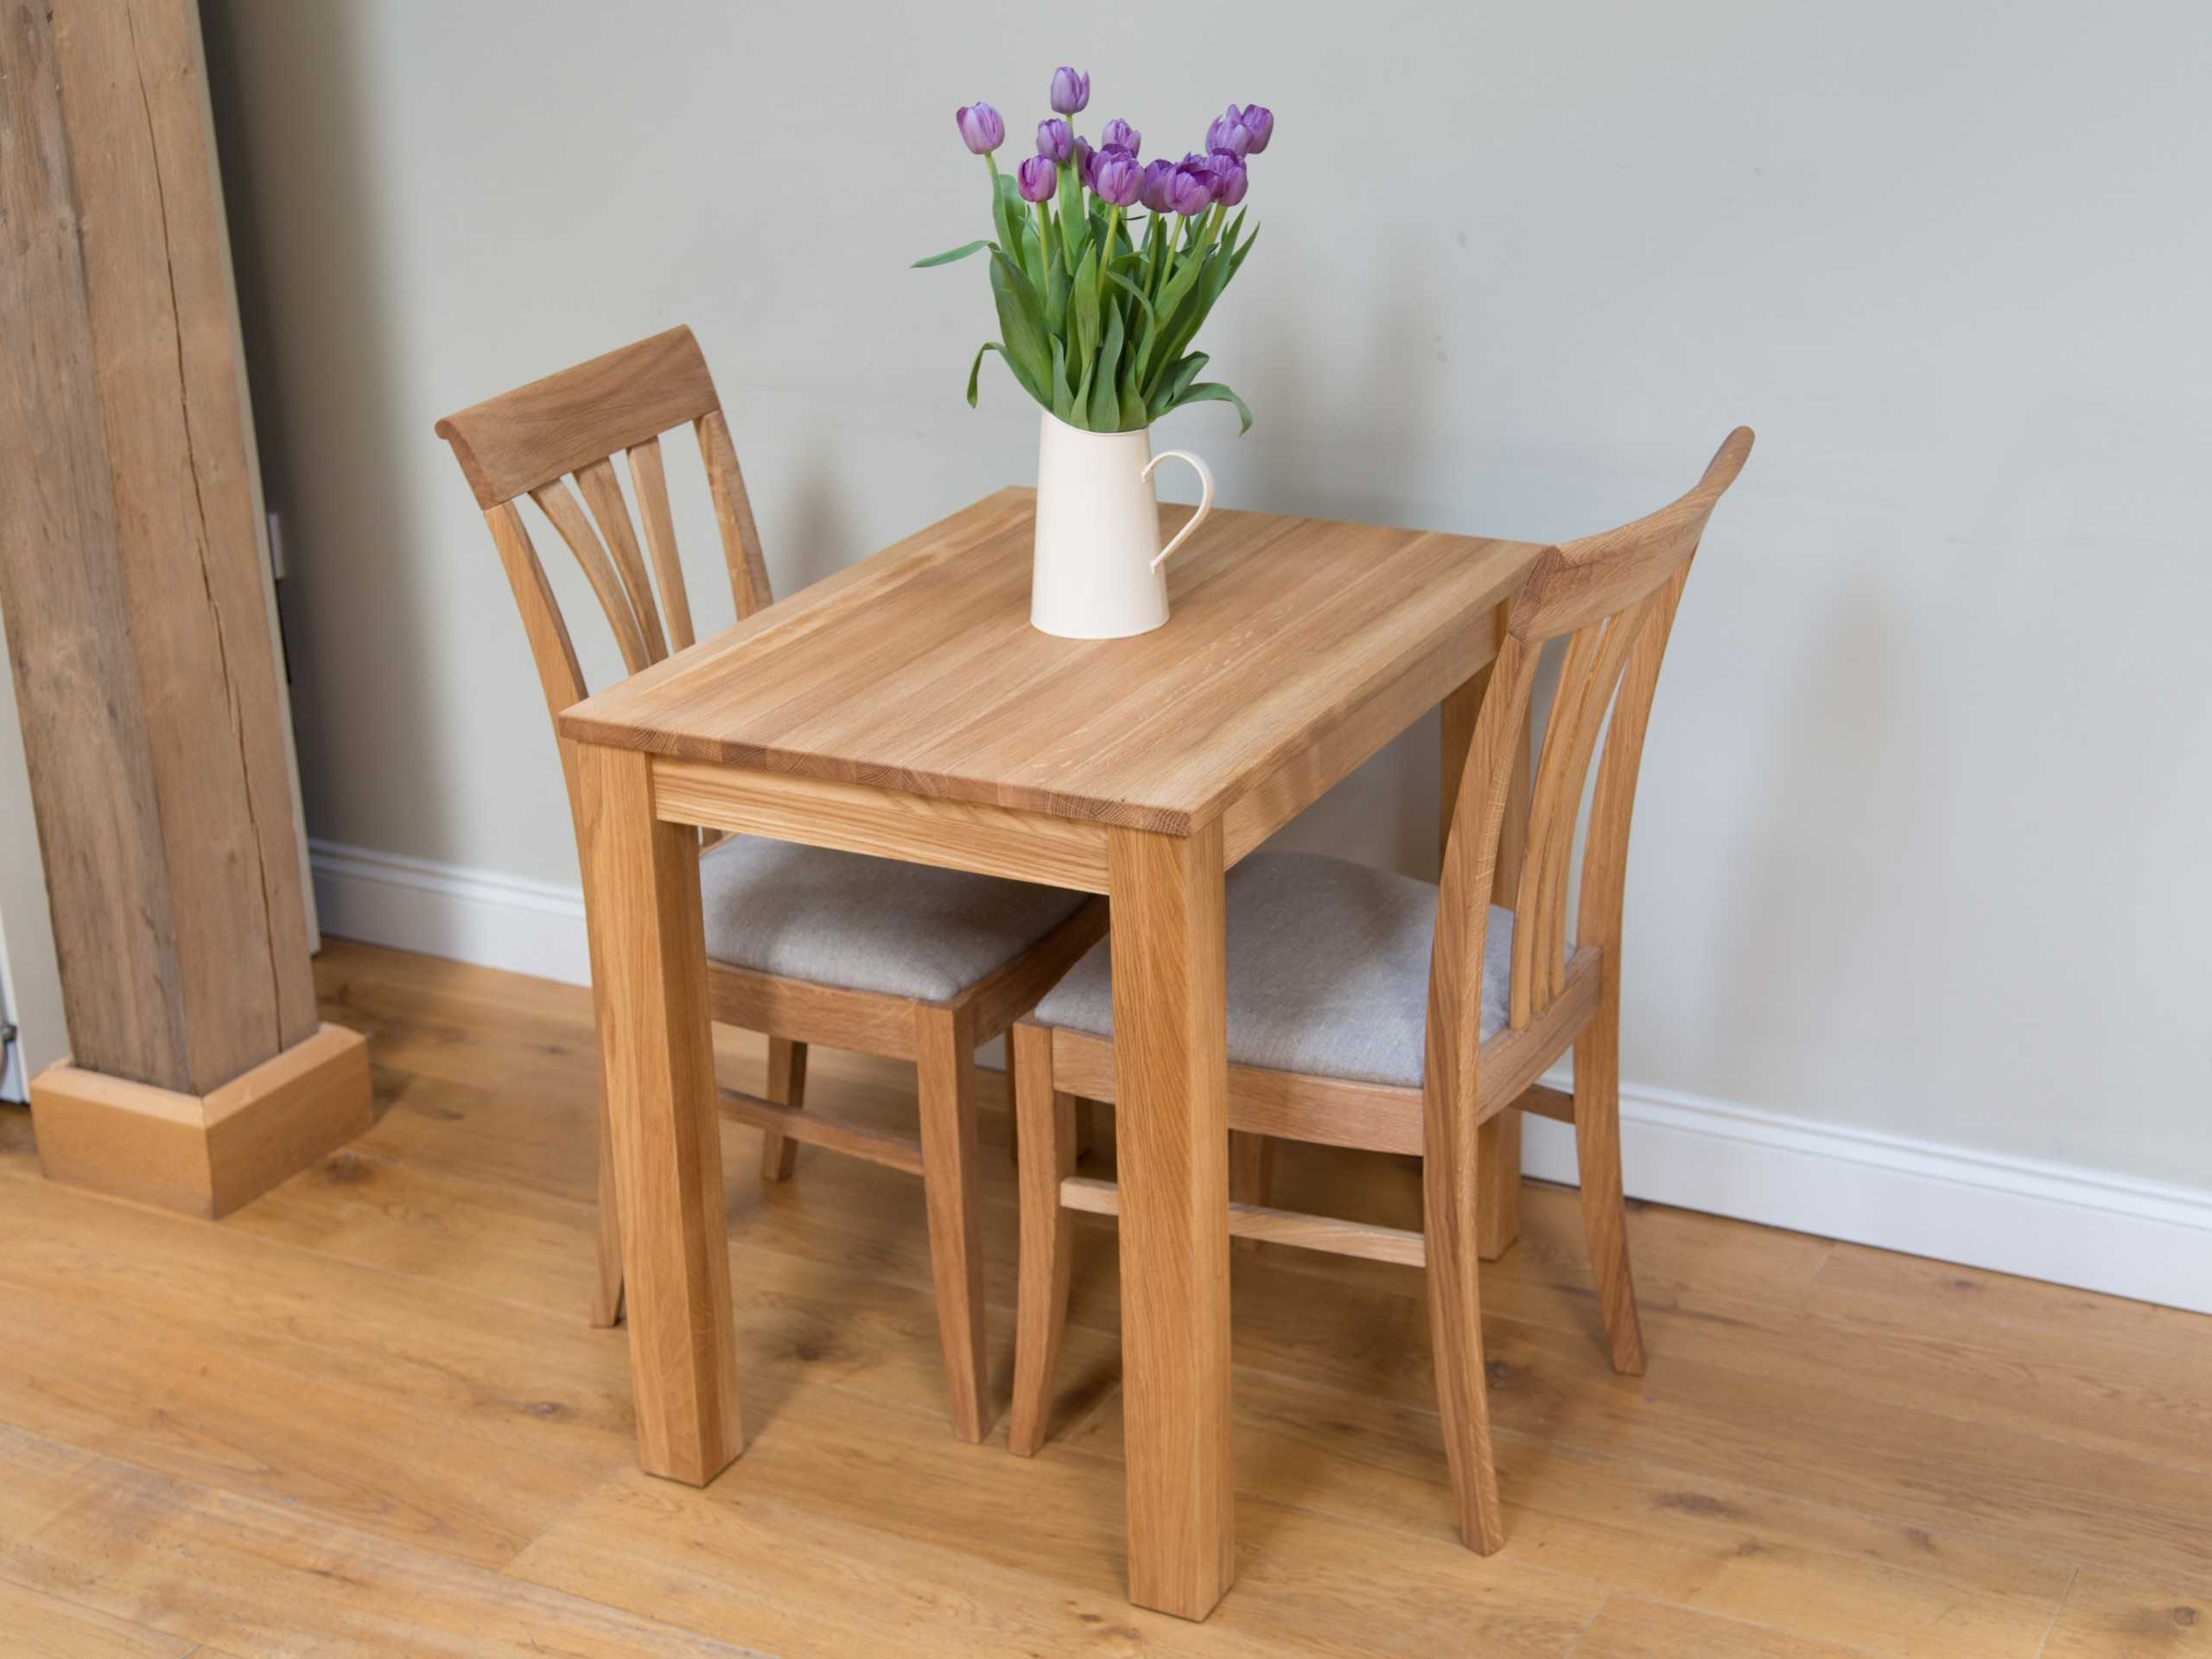 Small Two Person Dining Tables Regarding Most Recent Breathtaking Designs Chairs U Shape Stretcher Creamlear Ikea Small (View 4 of 25)